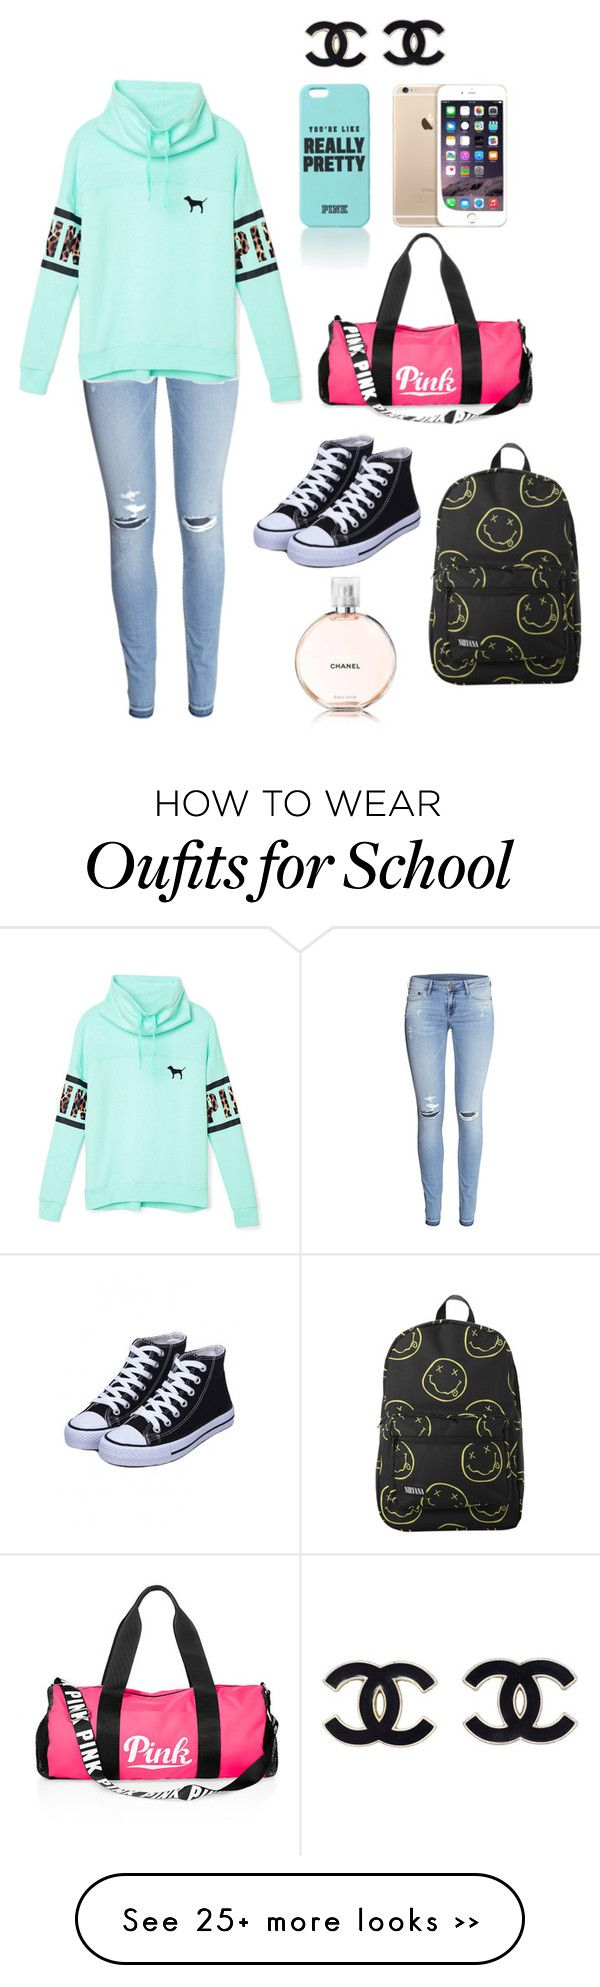 """""""School"""" by savannahroach95 on Polyvore featuring H&M, Victoria's Secret PINK and Chanel"""